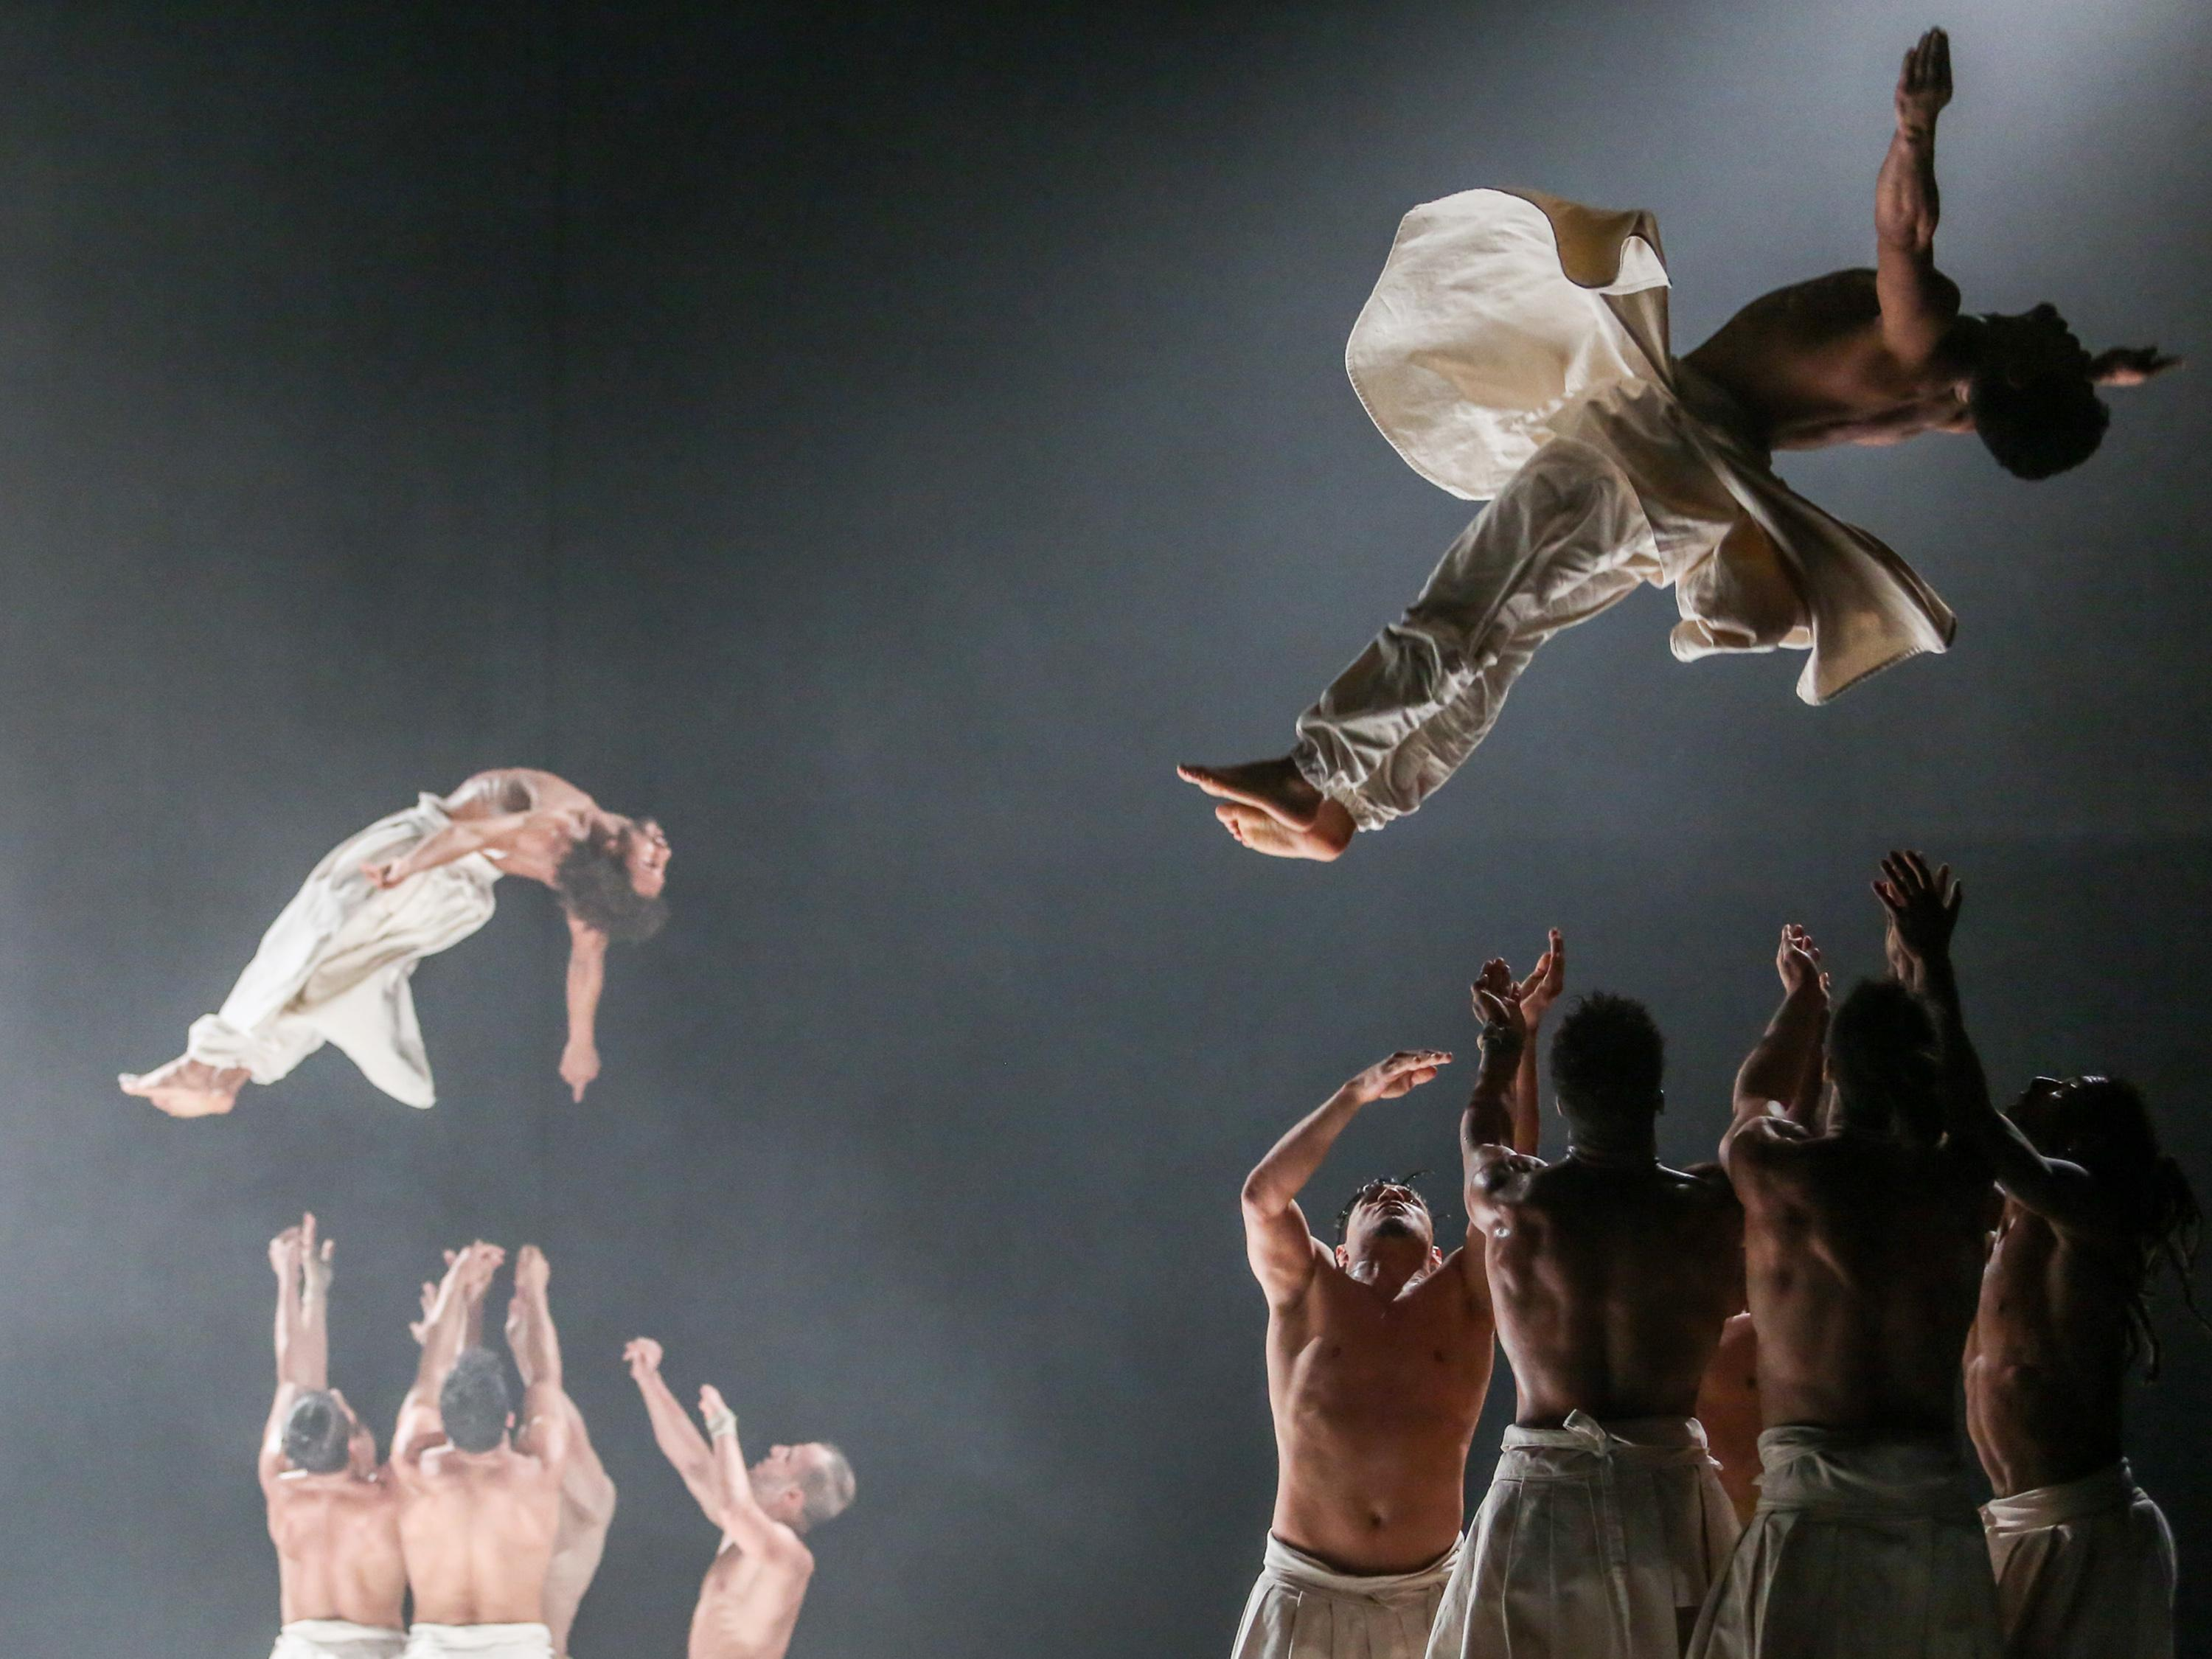 Cie Herve KOUBI, shown with two of its members soaring above the stage, is a high-energy 13-man dance troupe from Algeria and Burkina Faso will perform in February